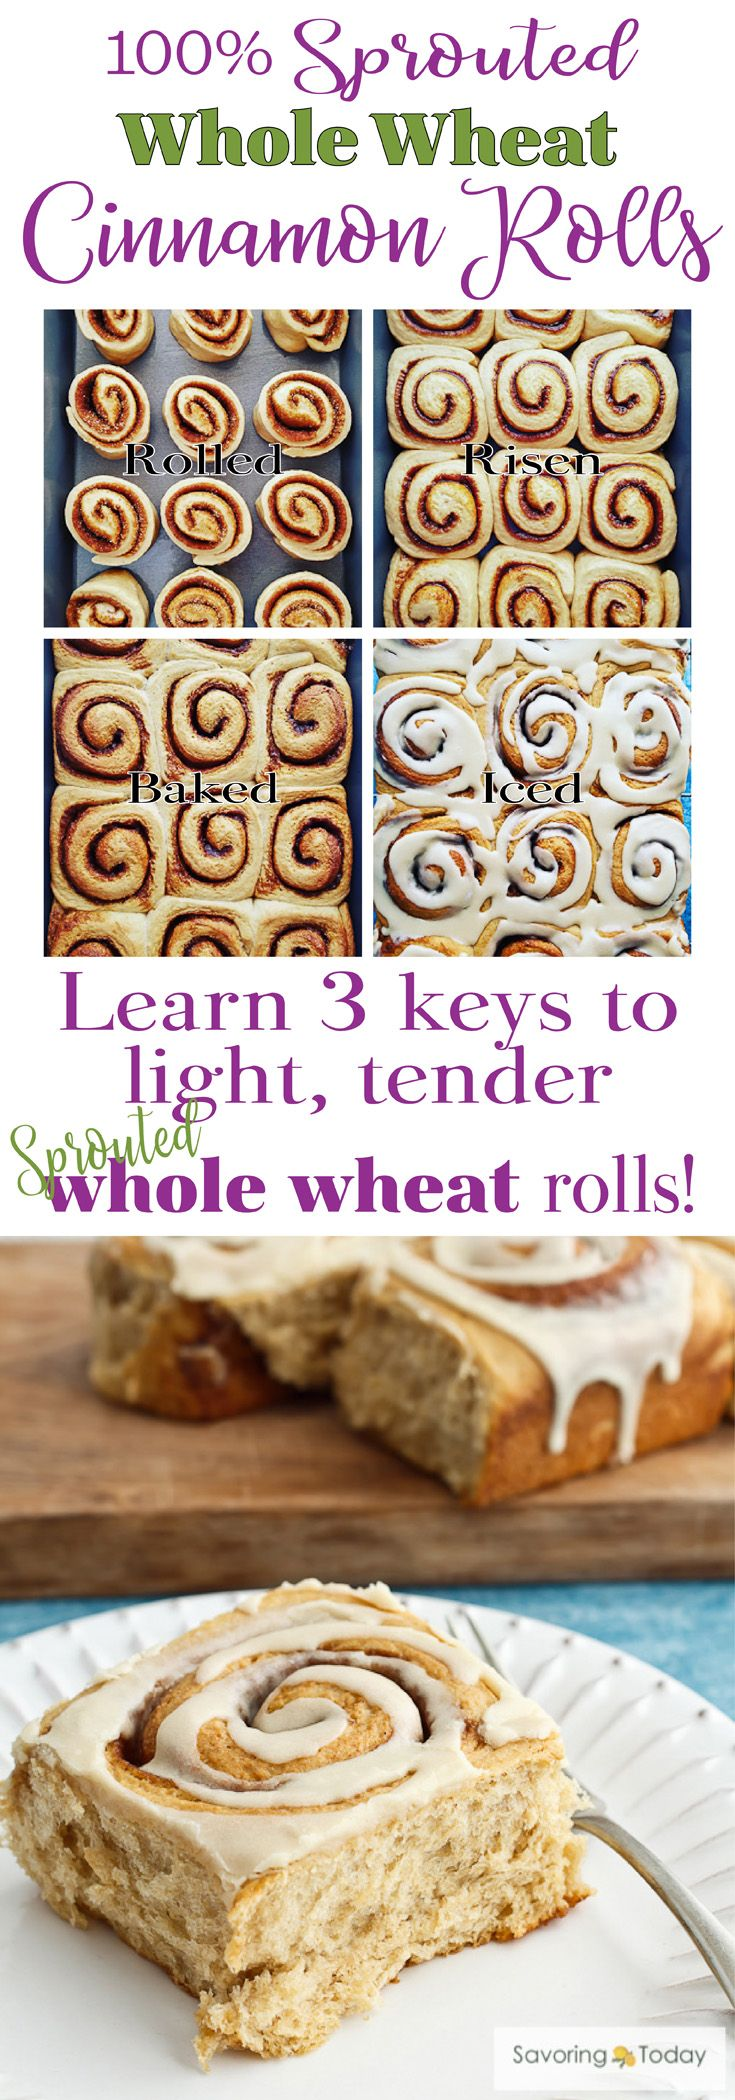 Sprouted Whole wheat is a healthier choice when baking your favorite breads. Learn the 3 keys to light and tender baked goods using 100% sprouted whole wheat in this Cinnamon Roll Recipe. A favorite Christmas or brunch treat your whole family will love and you can feel good about.